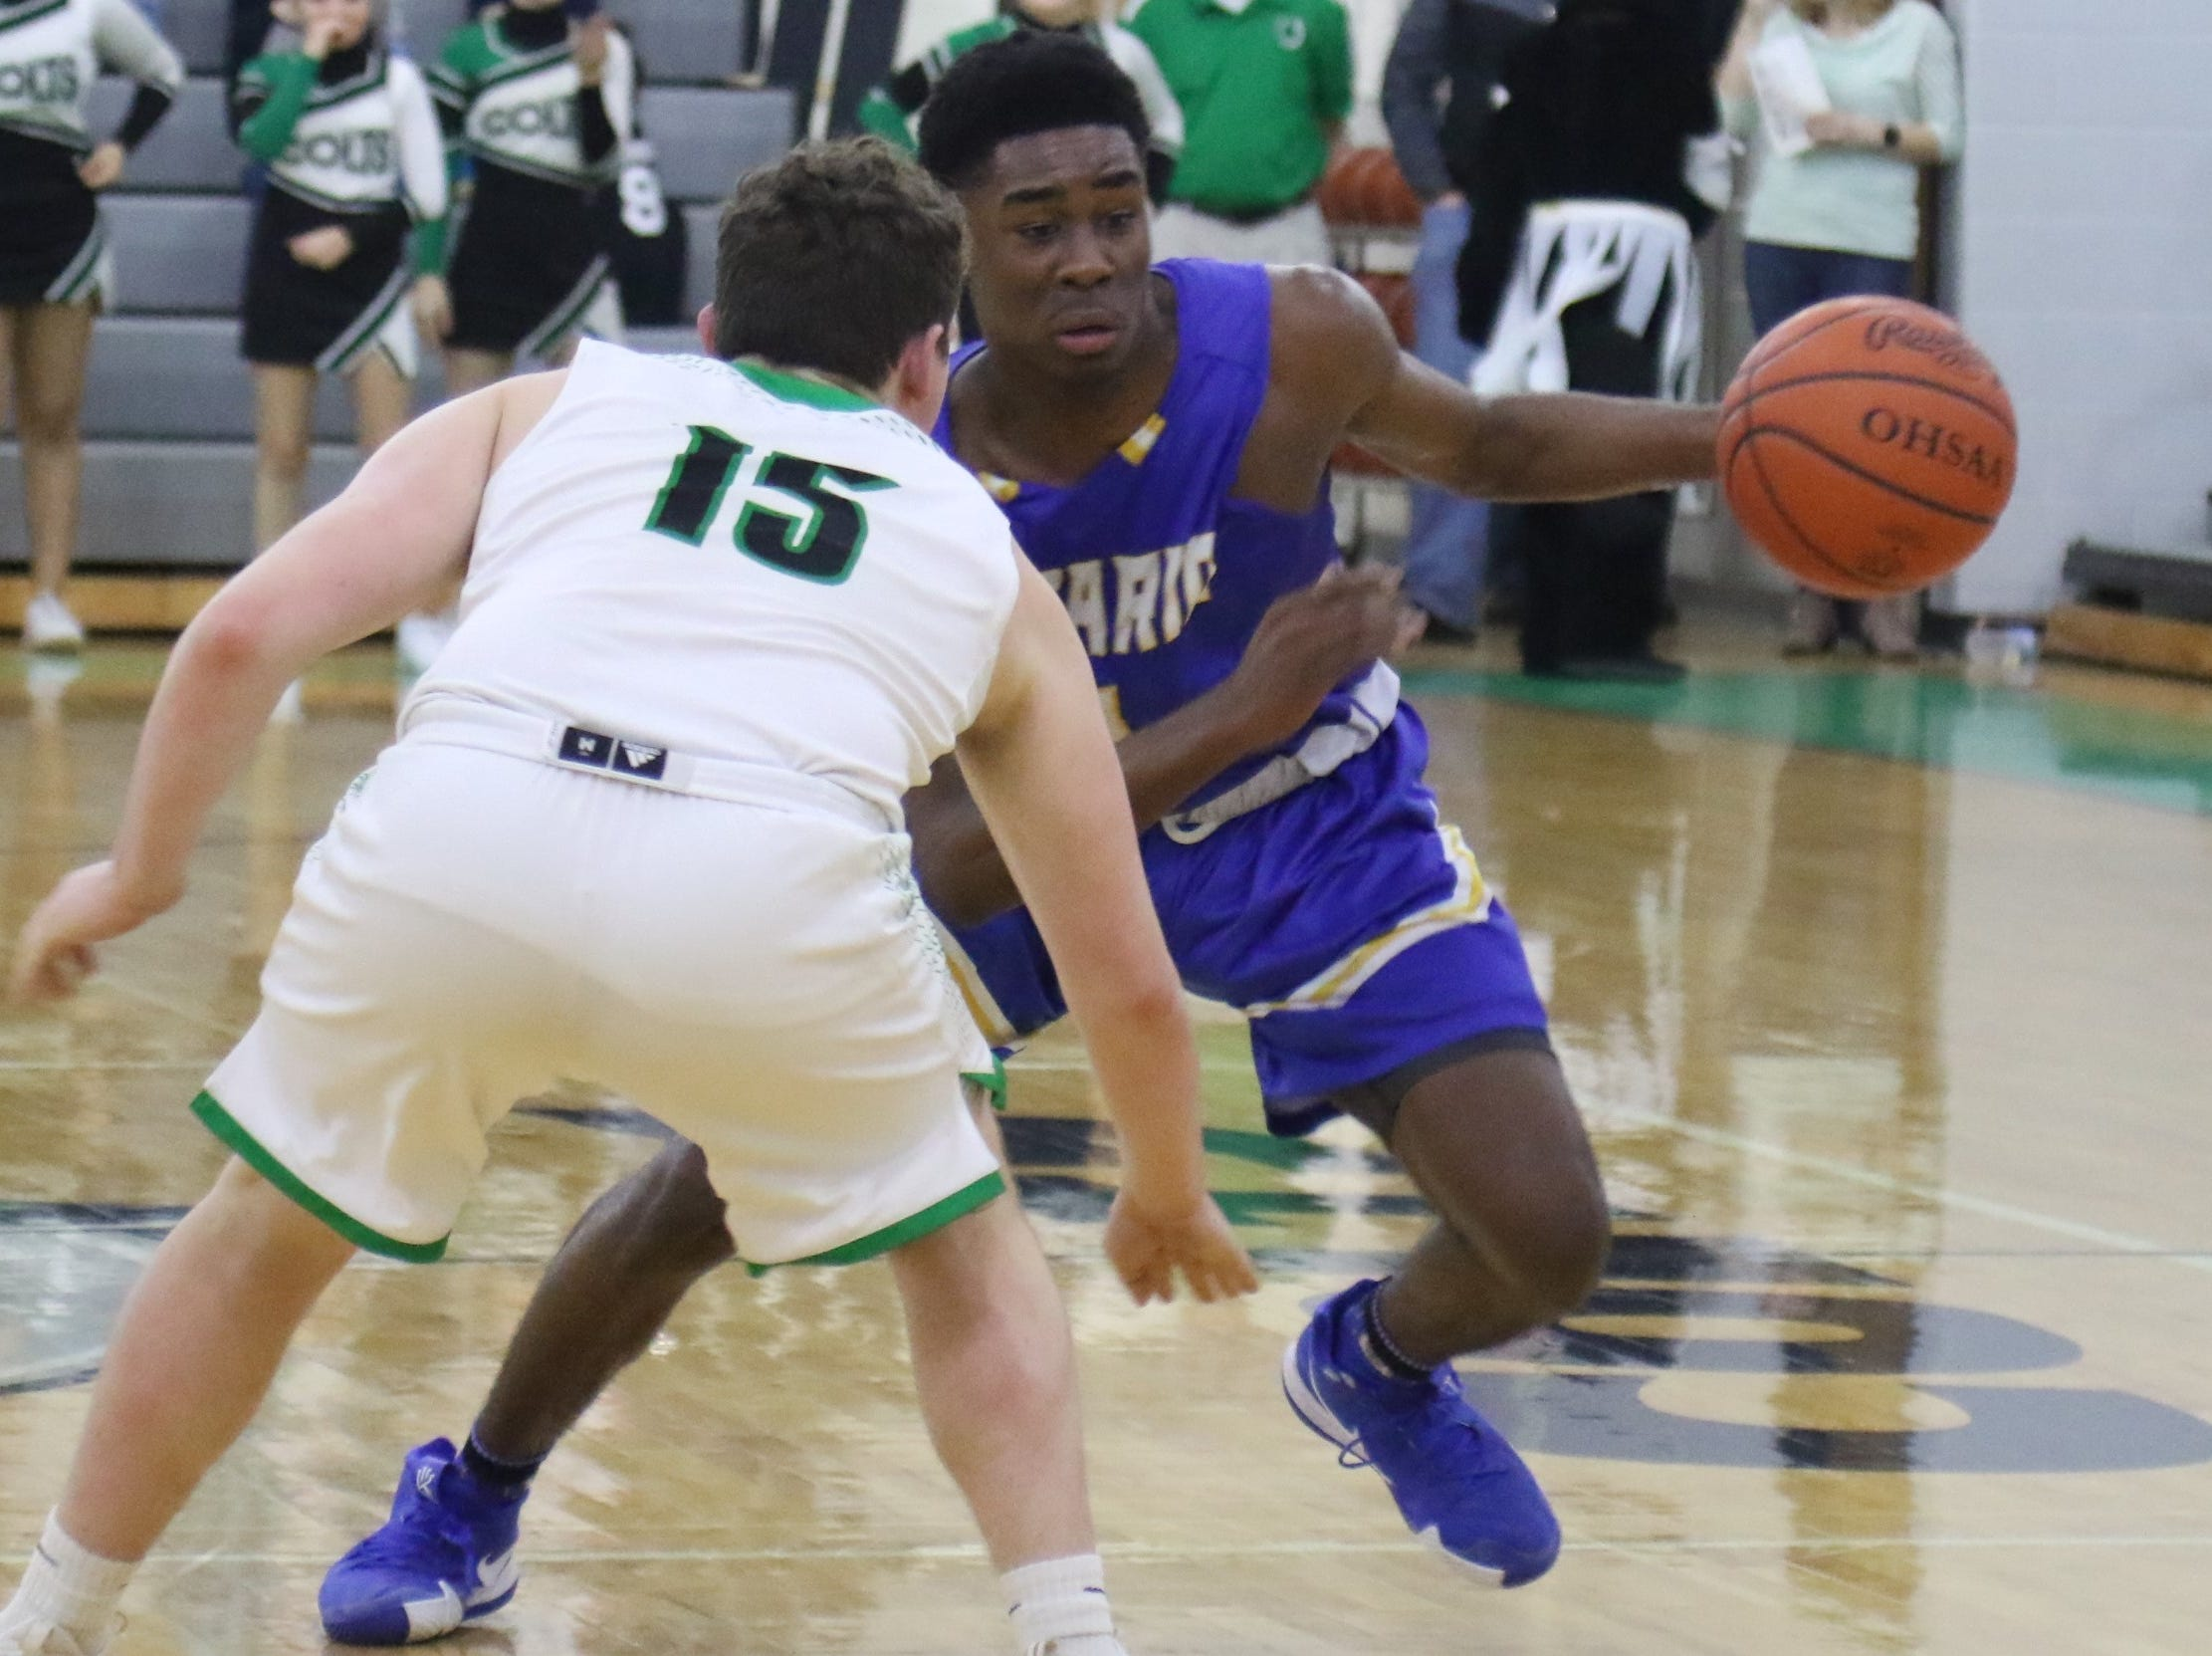 GALLERY: Ontario 61, Clear Fork 52